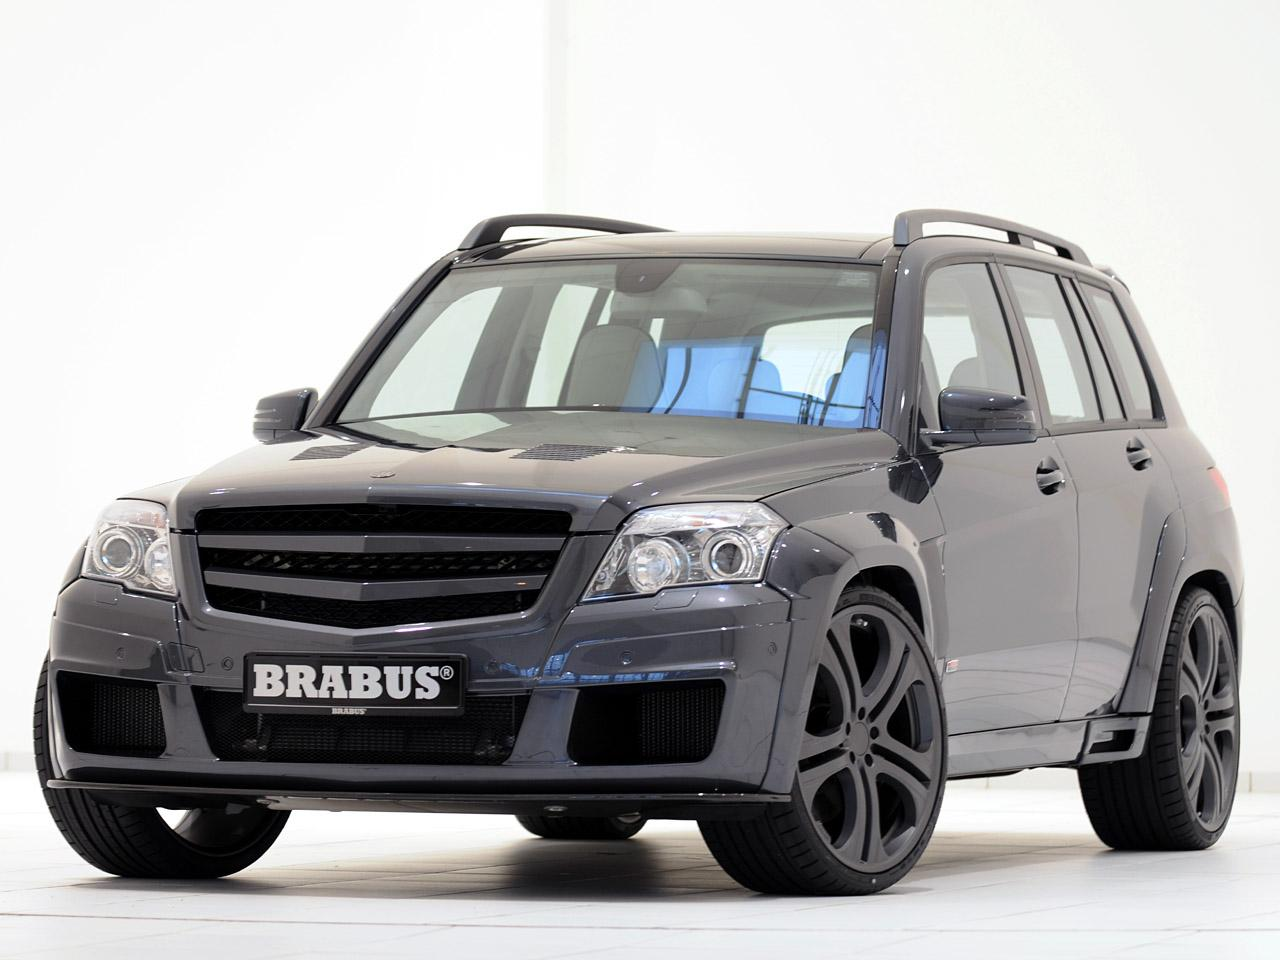 2010 brabus glk v12 news and information for 2010 mercedes benz glk 350 recalls